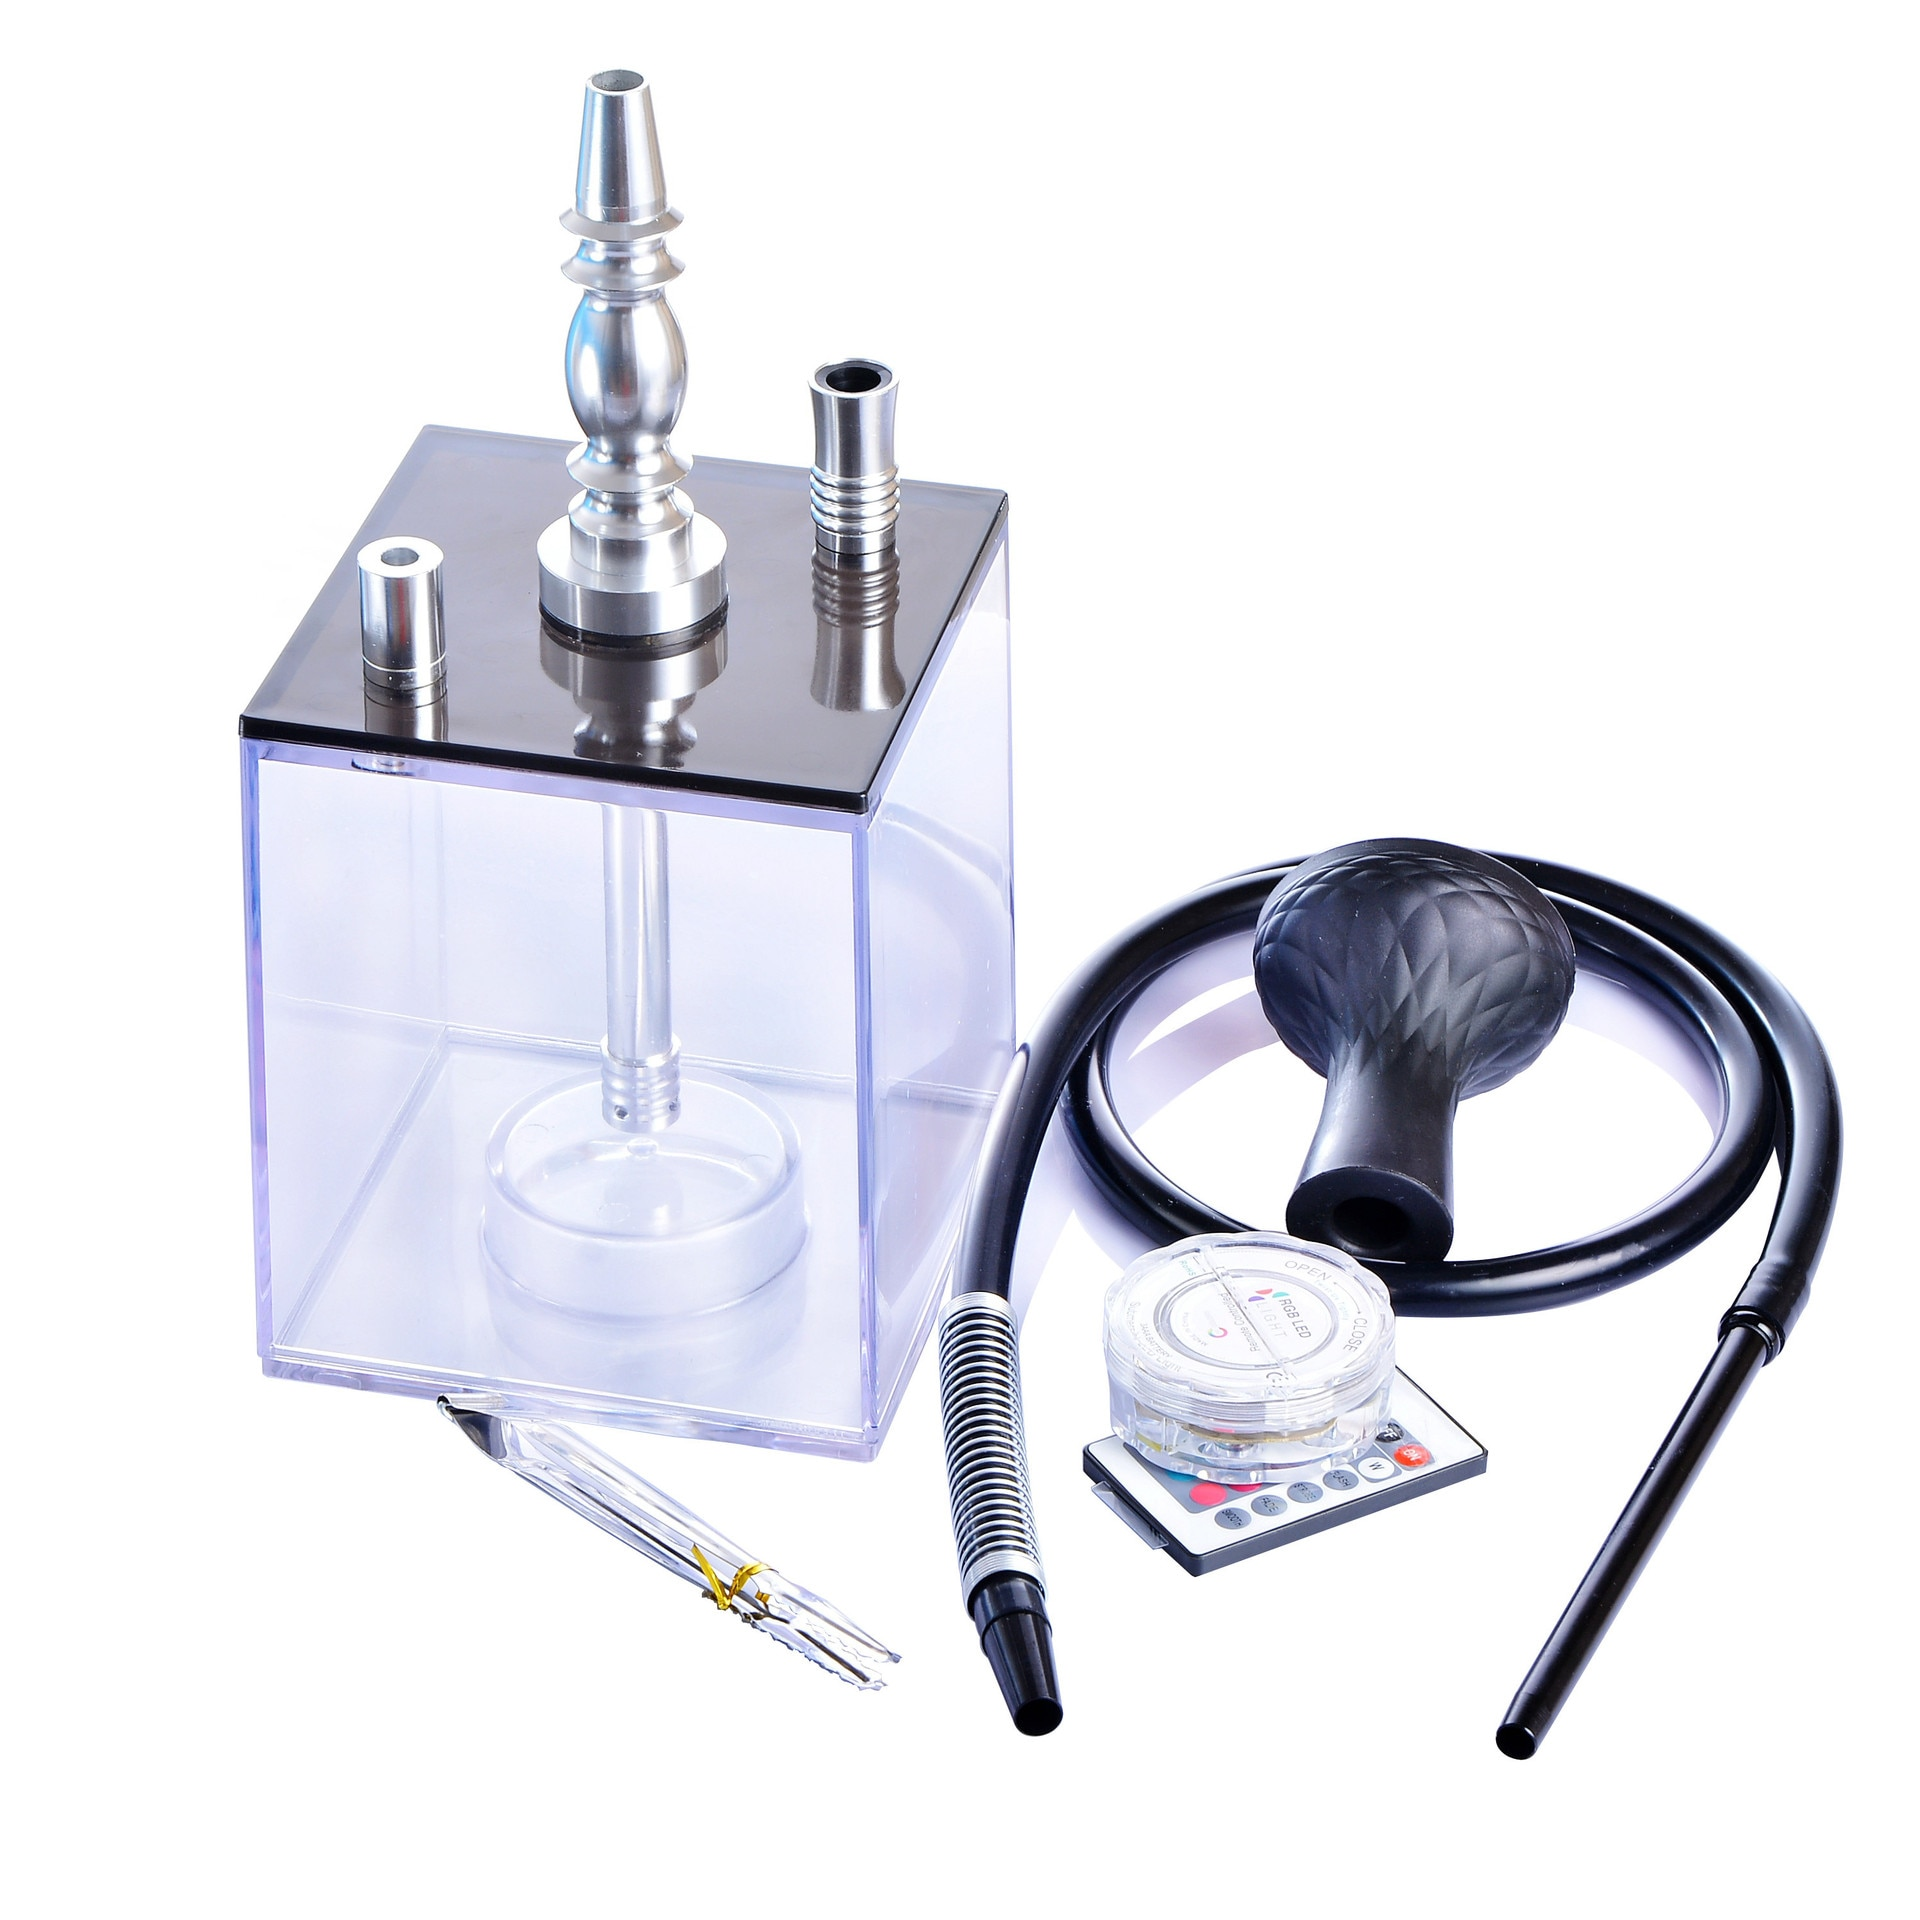 Upscale Transparent Acrylic Hookah Set With LED Light Shisha Water Pipe Include Silicone Bowl Clip Pipe Hose enlarge